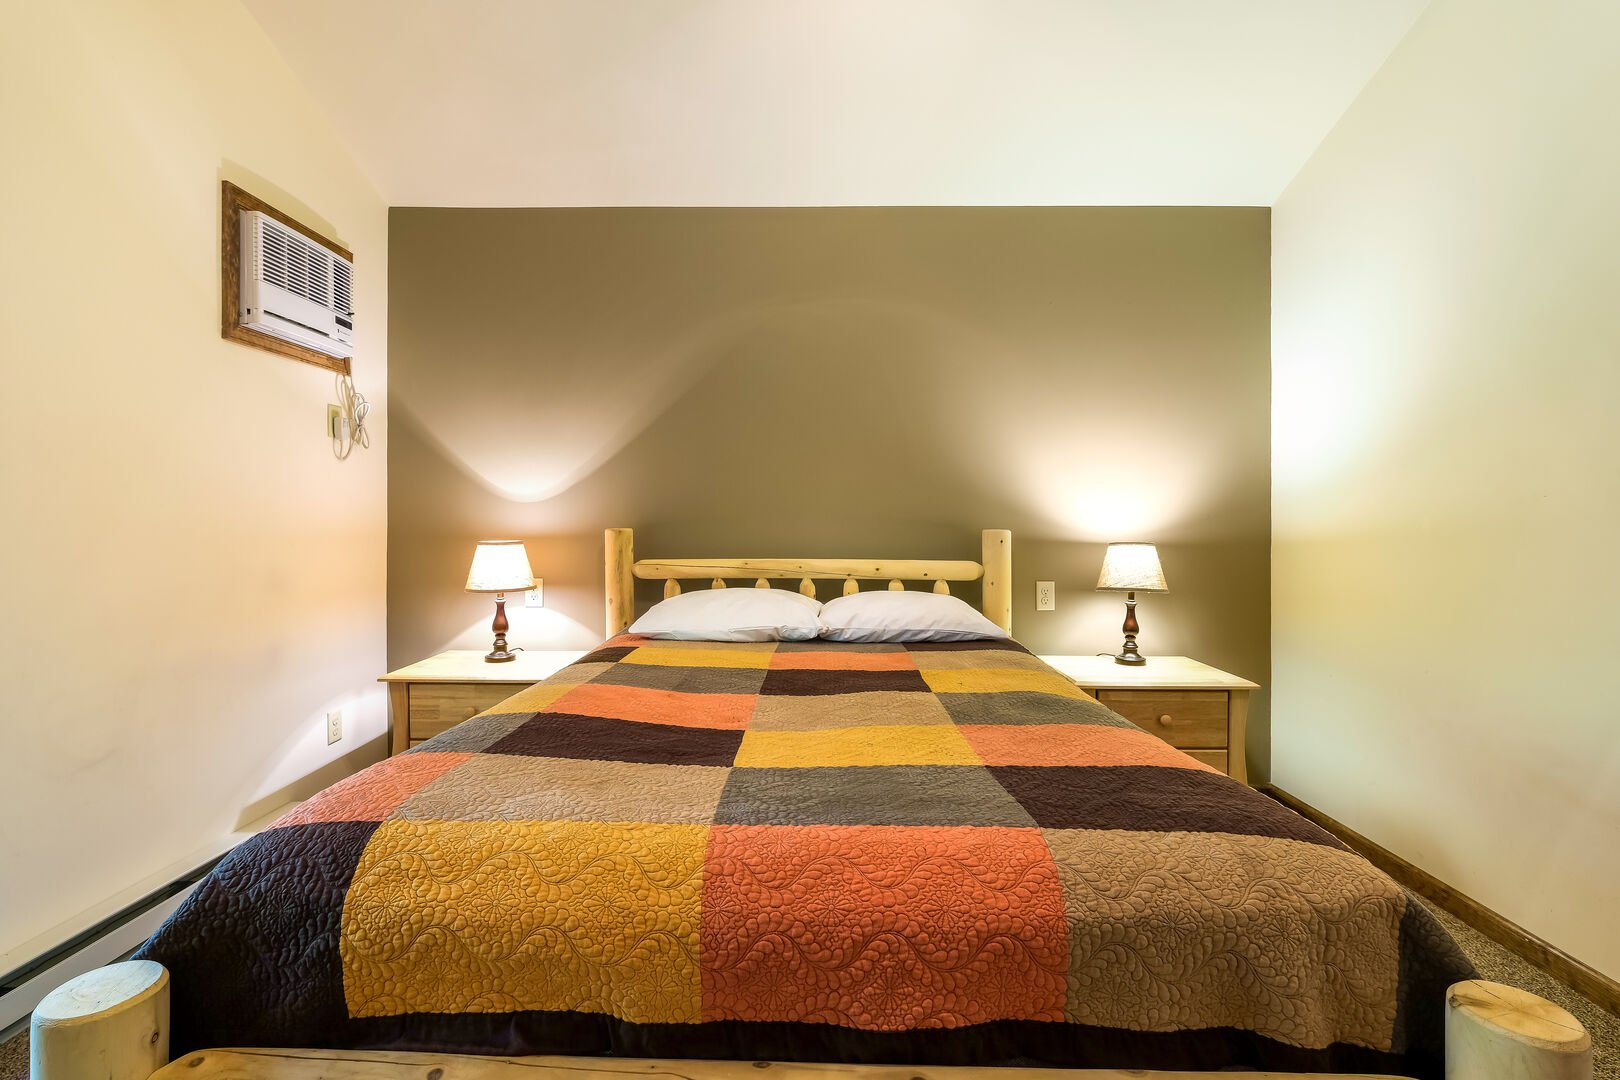 Large bed with two nightstands and lamps on either side. Air conditioner visible to left.